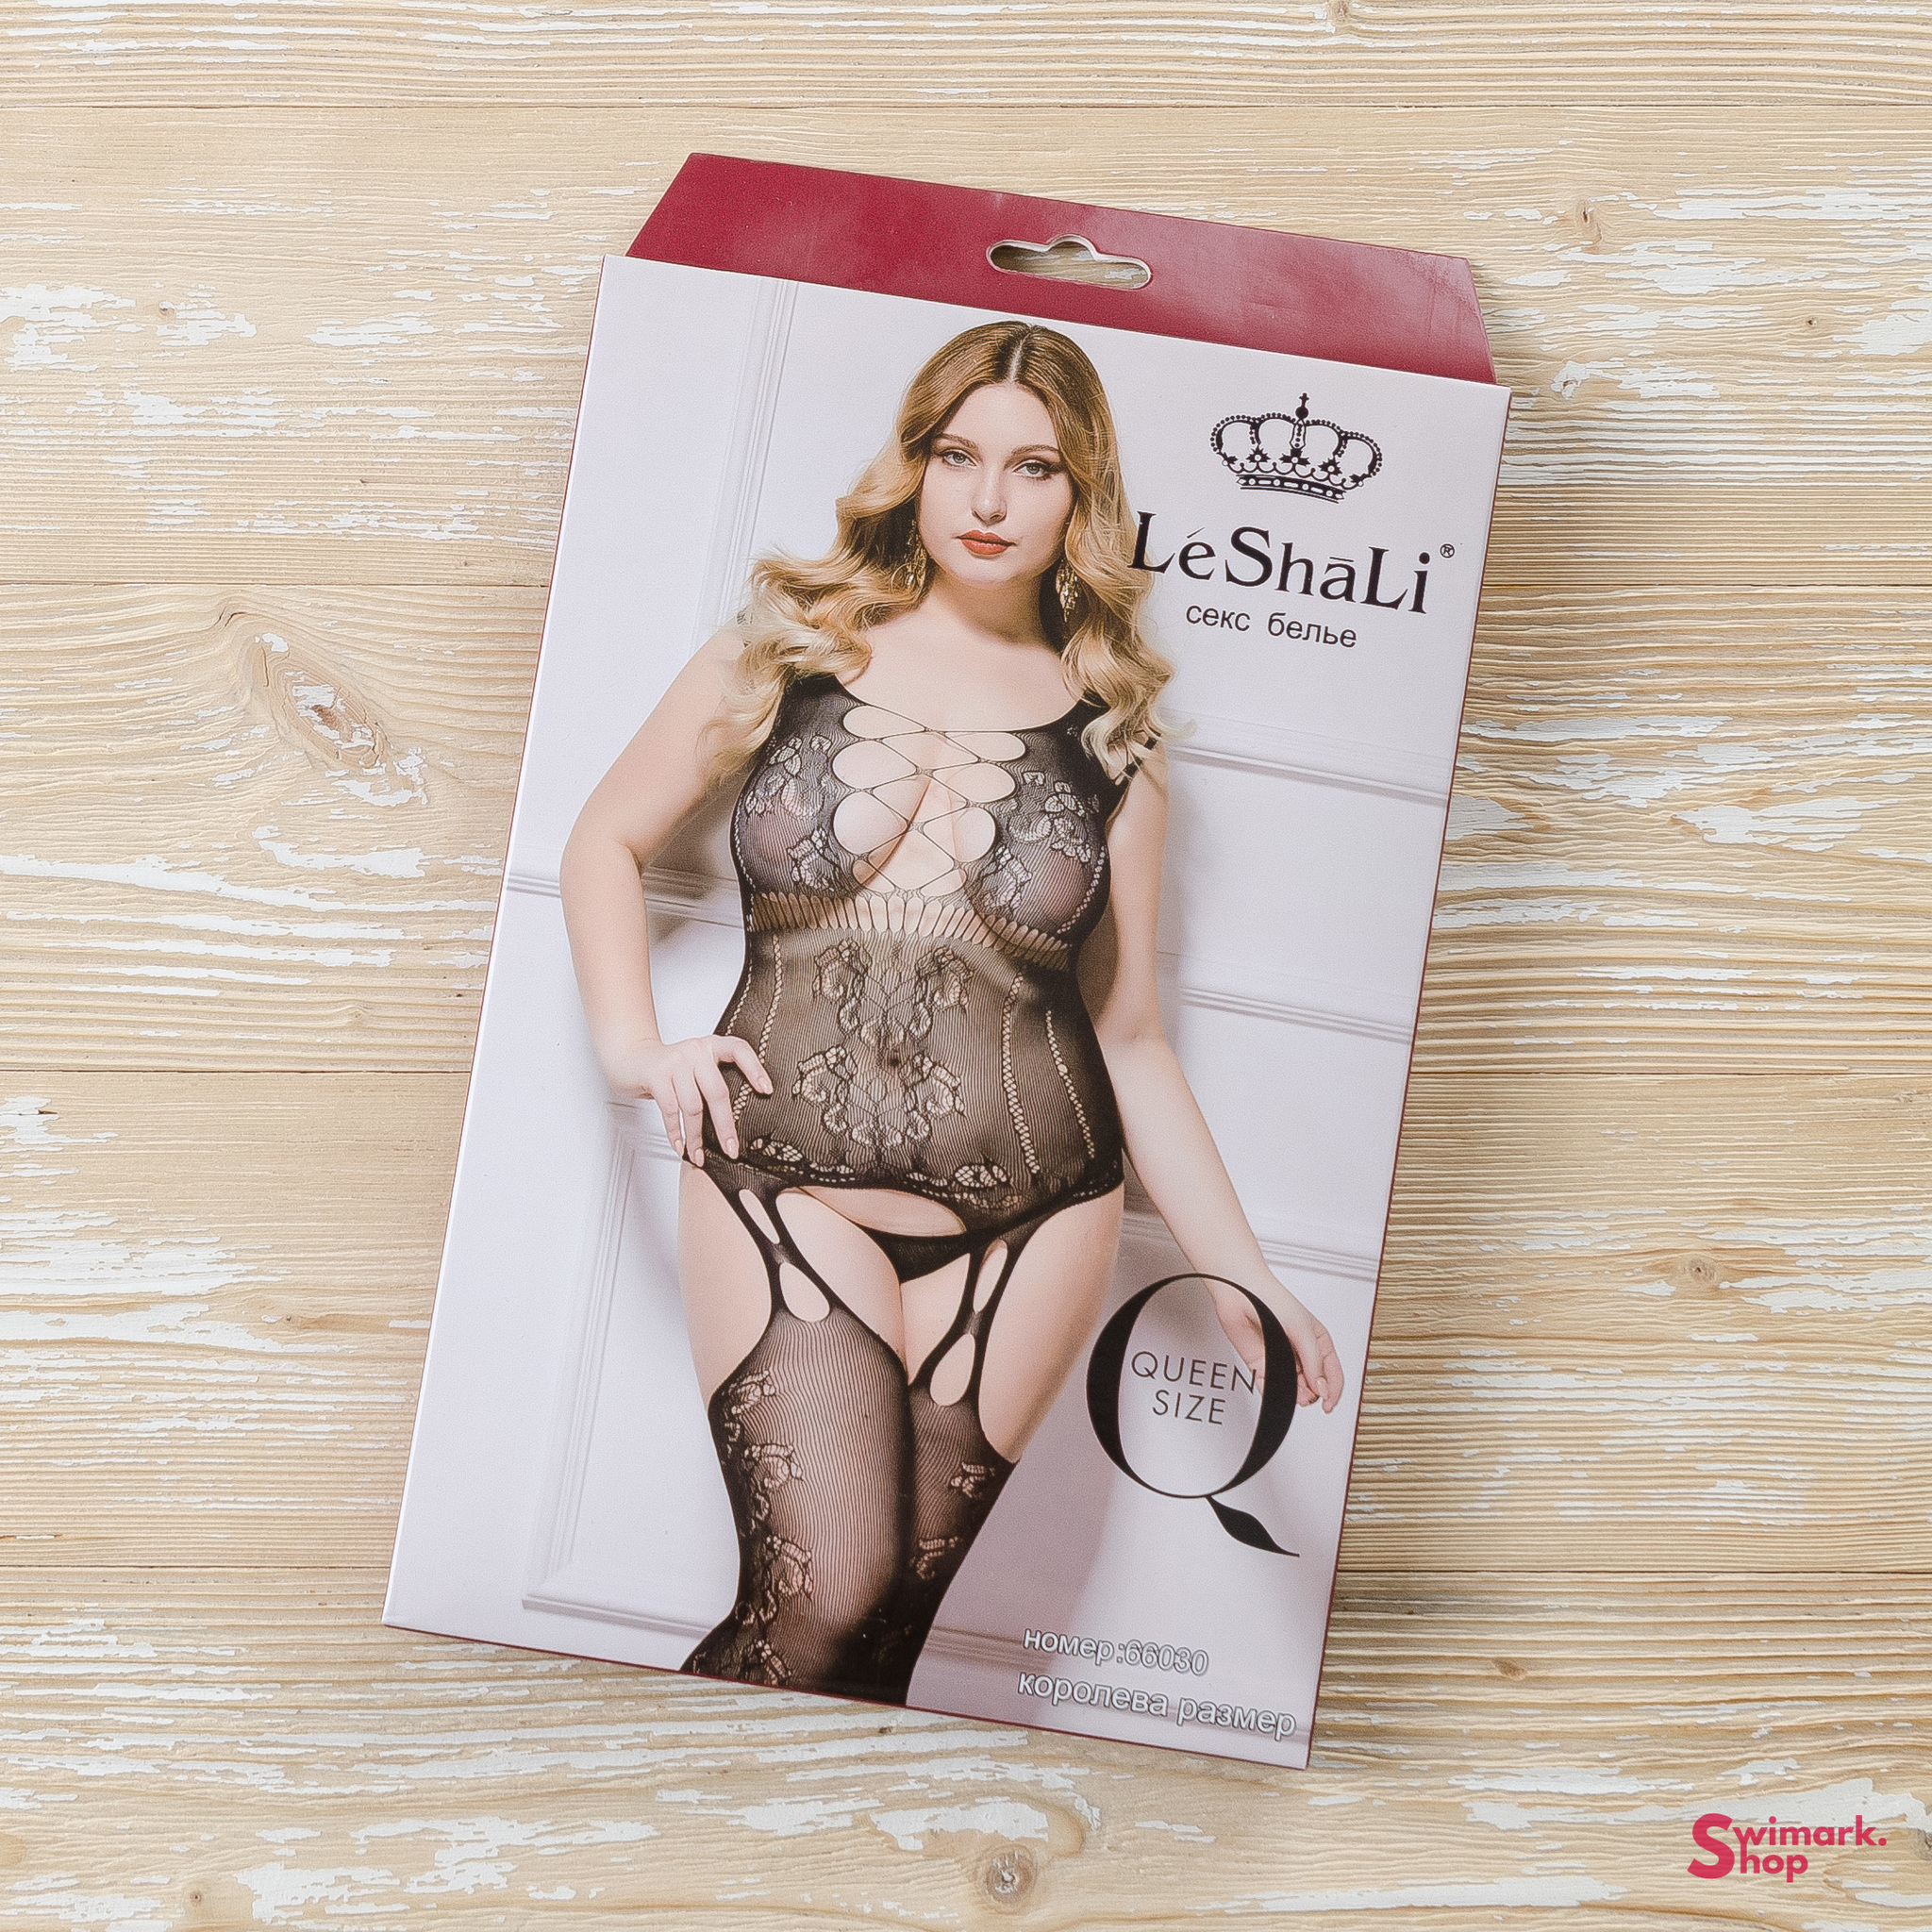 Le Shali Эротическая боди-сетка LE SHALI 66030 Queen Size swimarkshop-6187-2.jpg